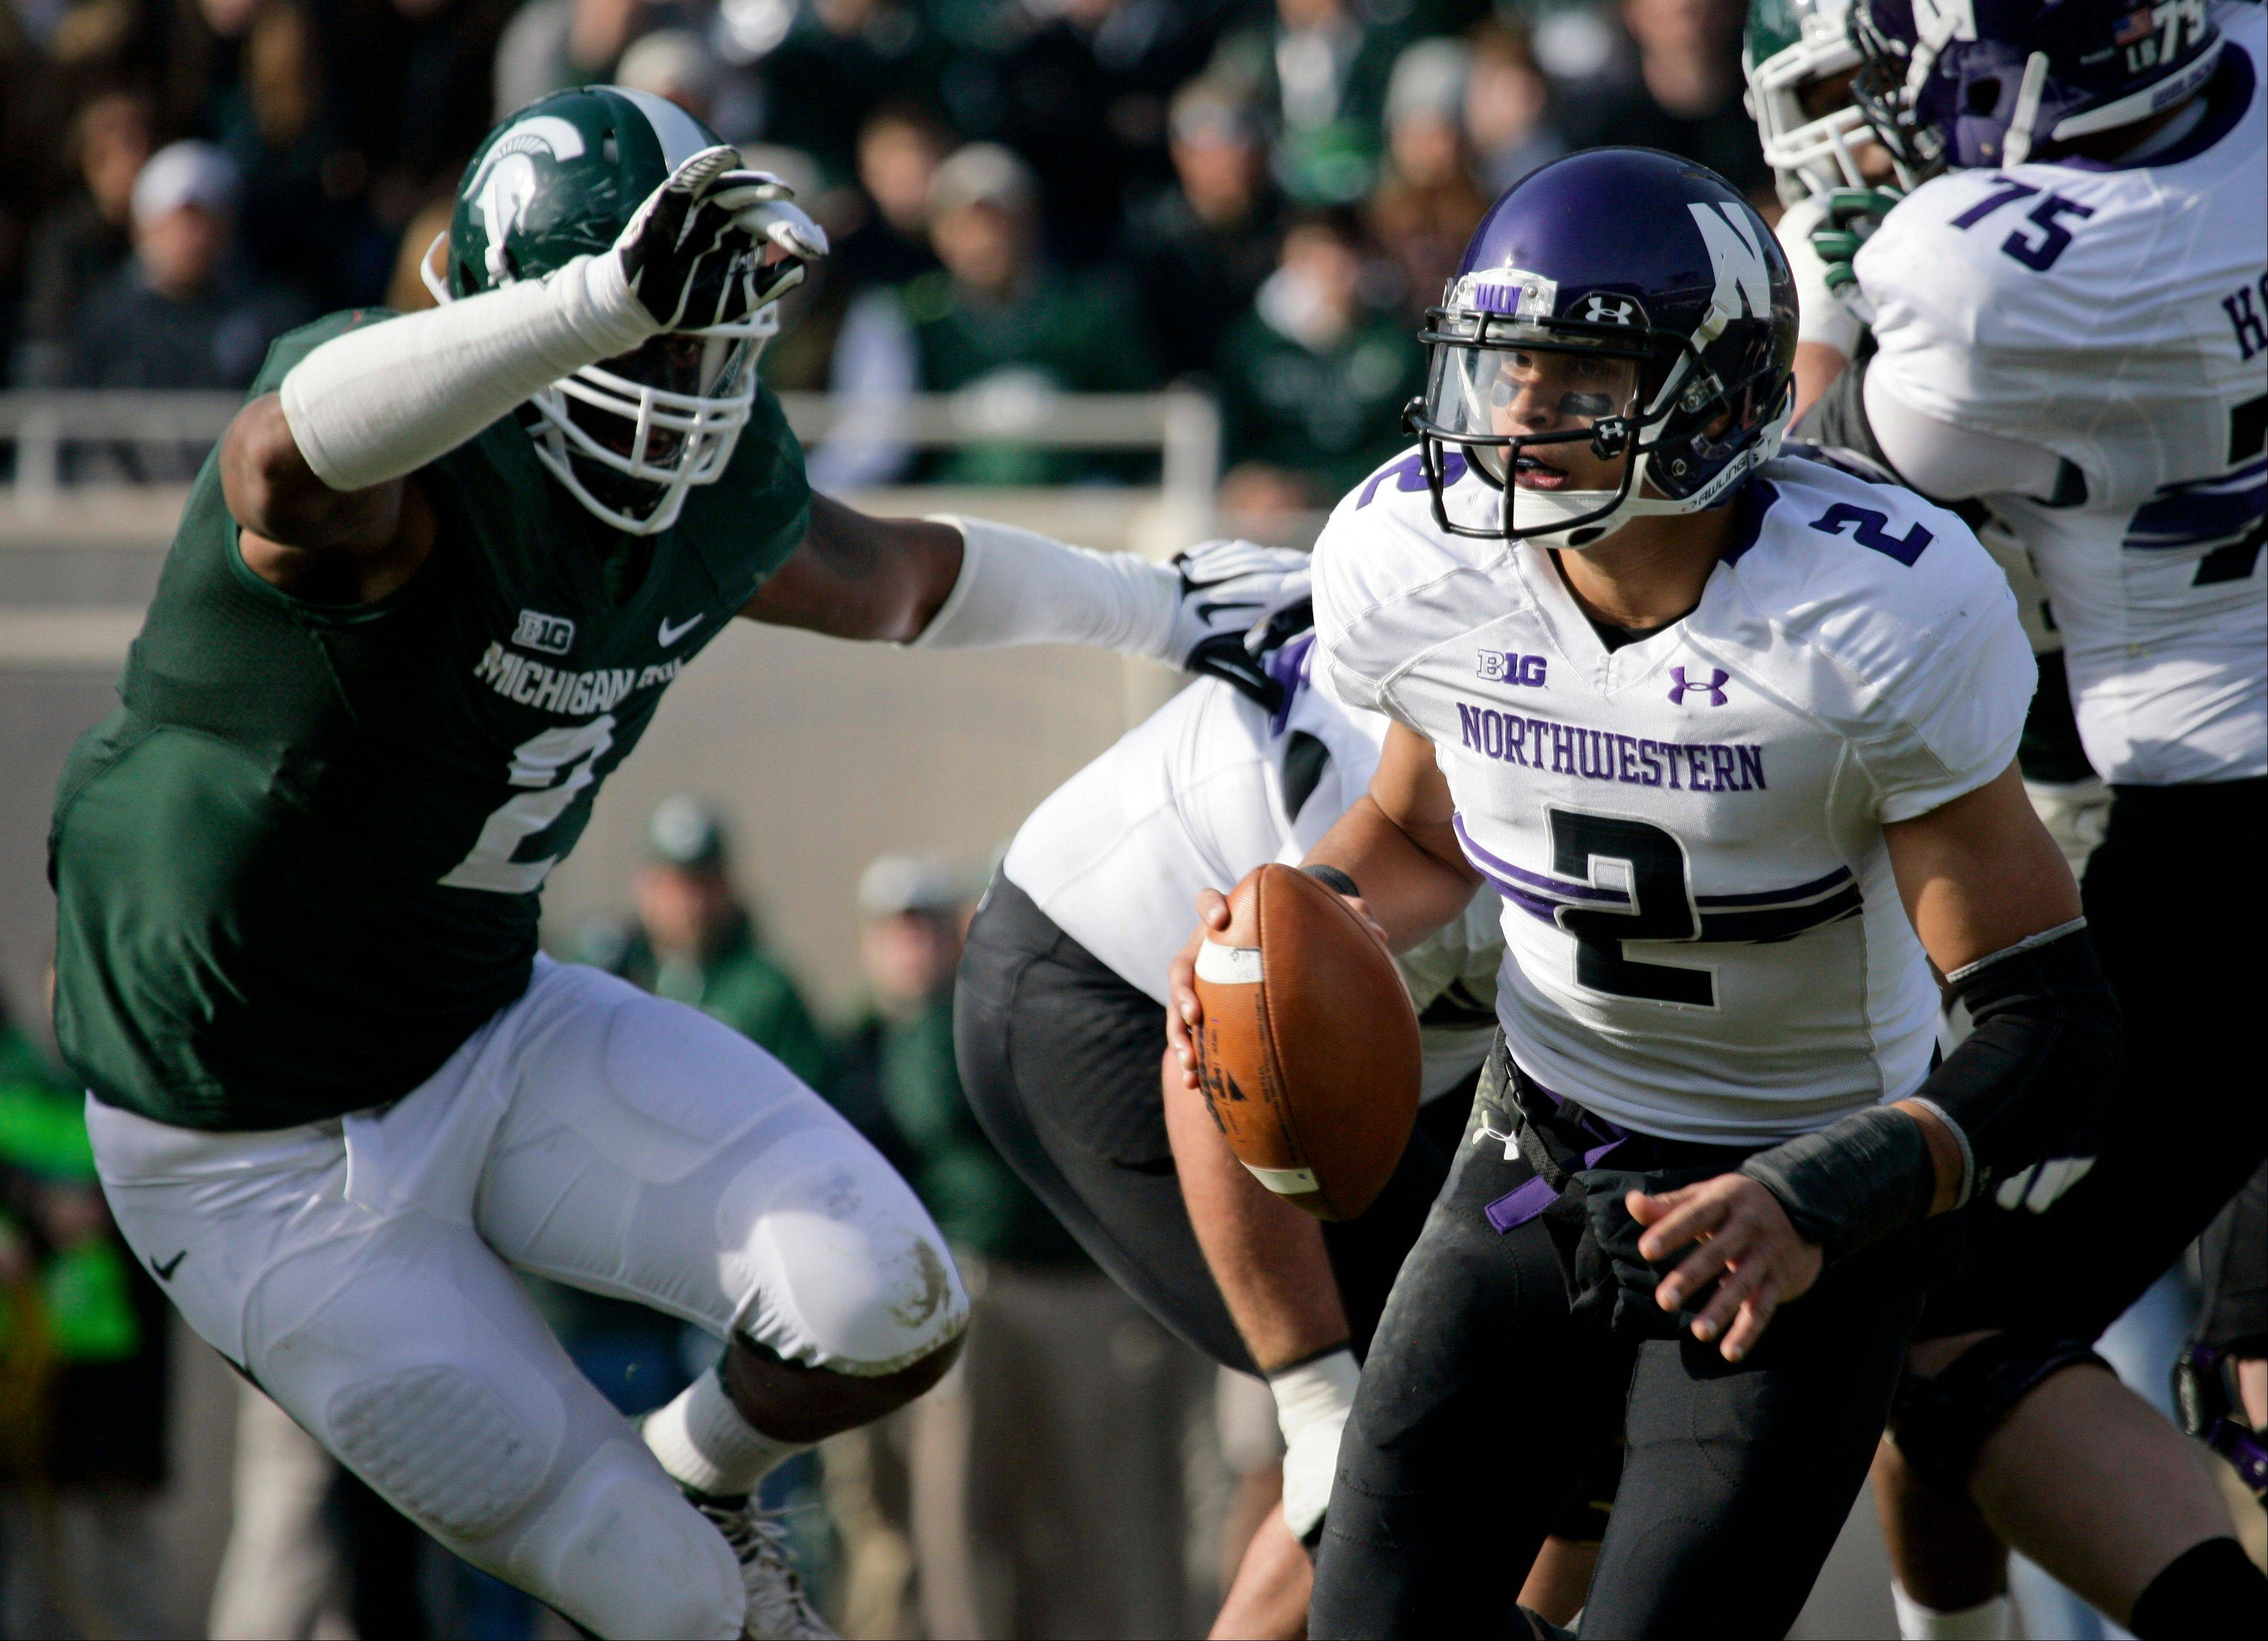 Northwestern quarterback Kain Colter, right, scrambles against Michigan State's William Gholston during the first quarter.